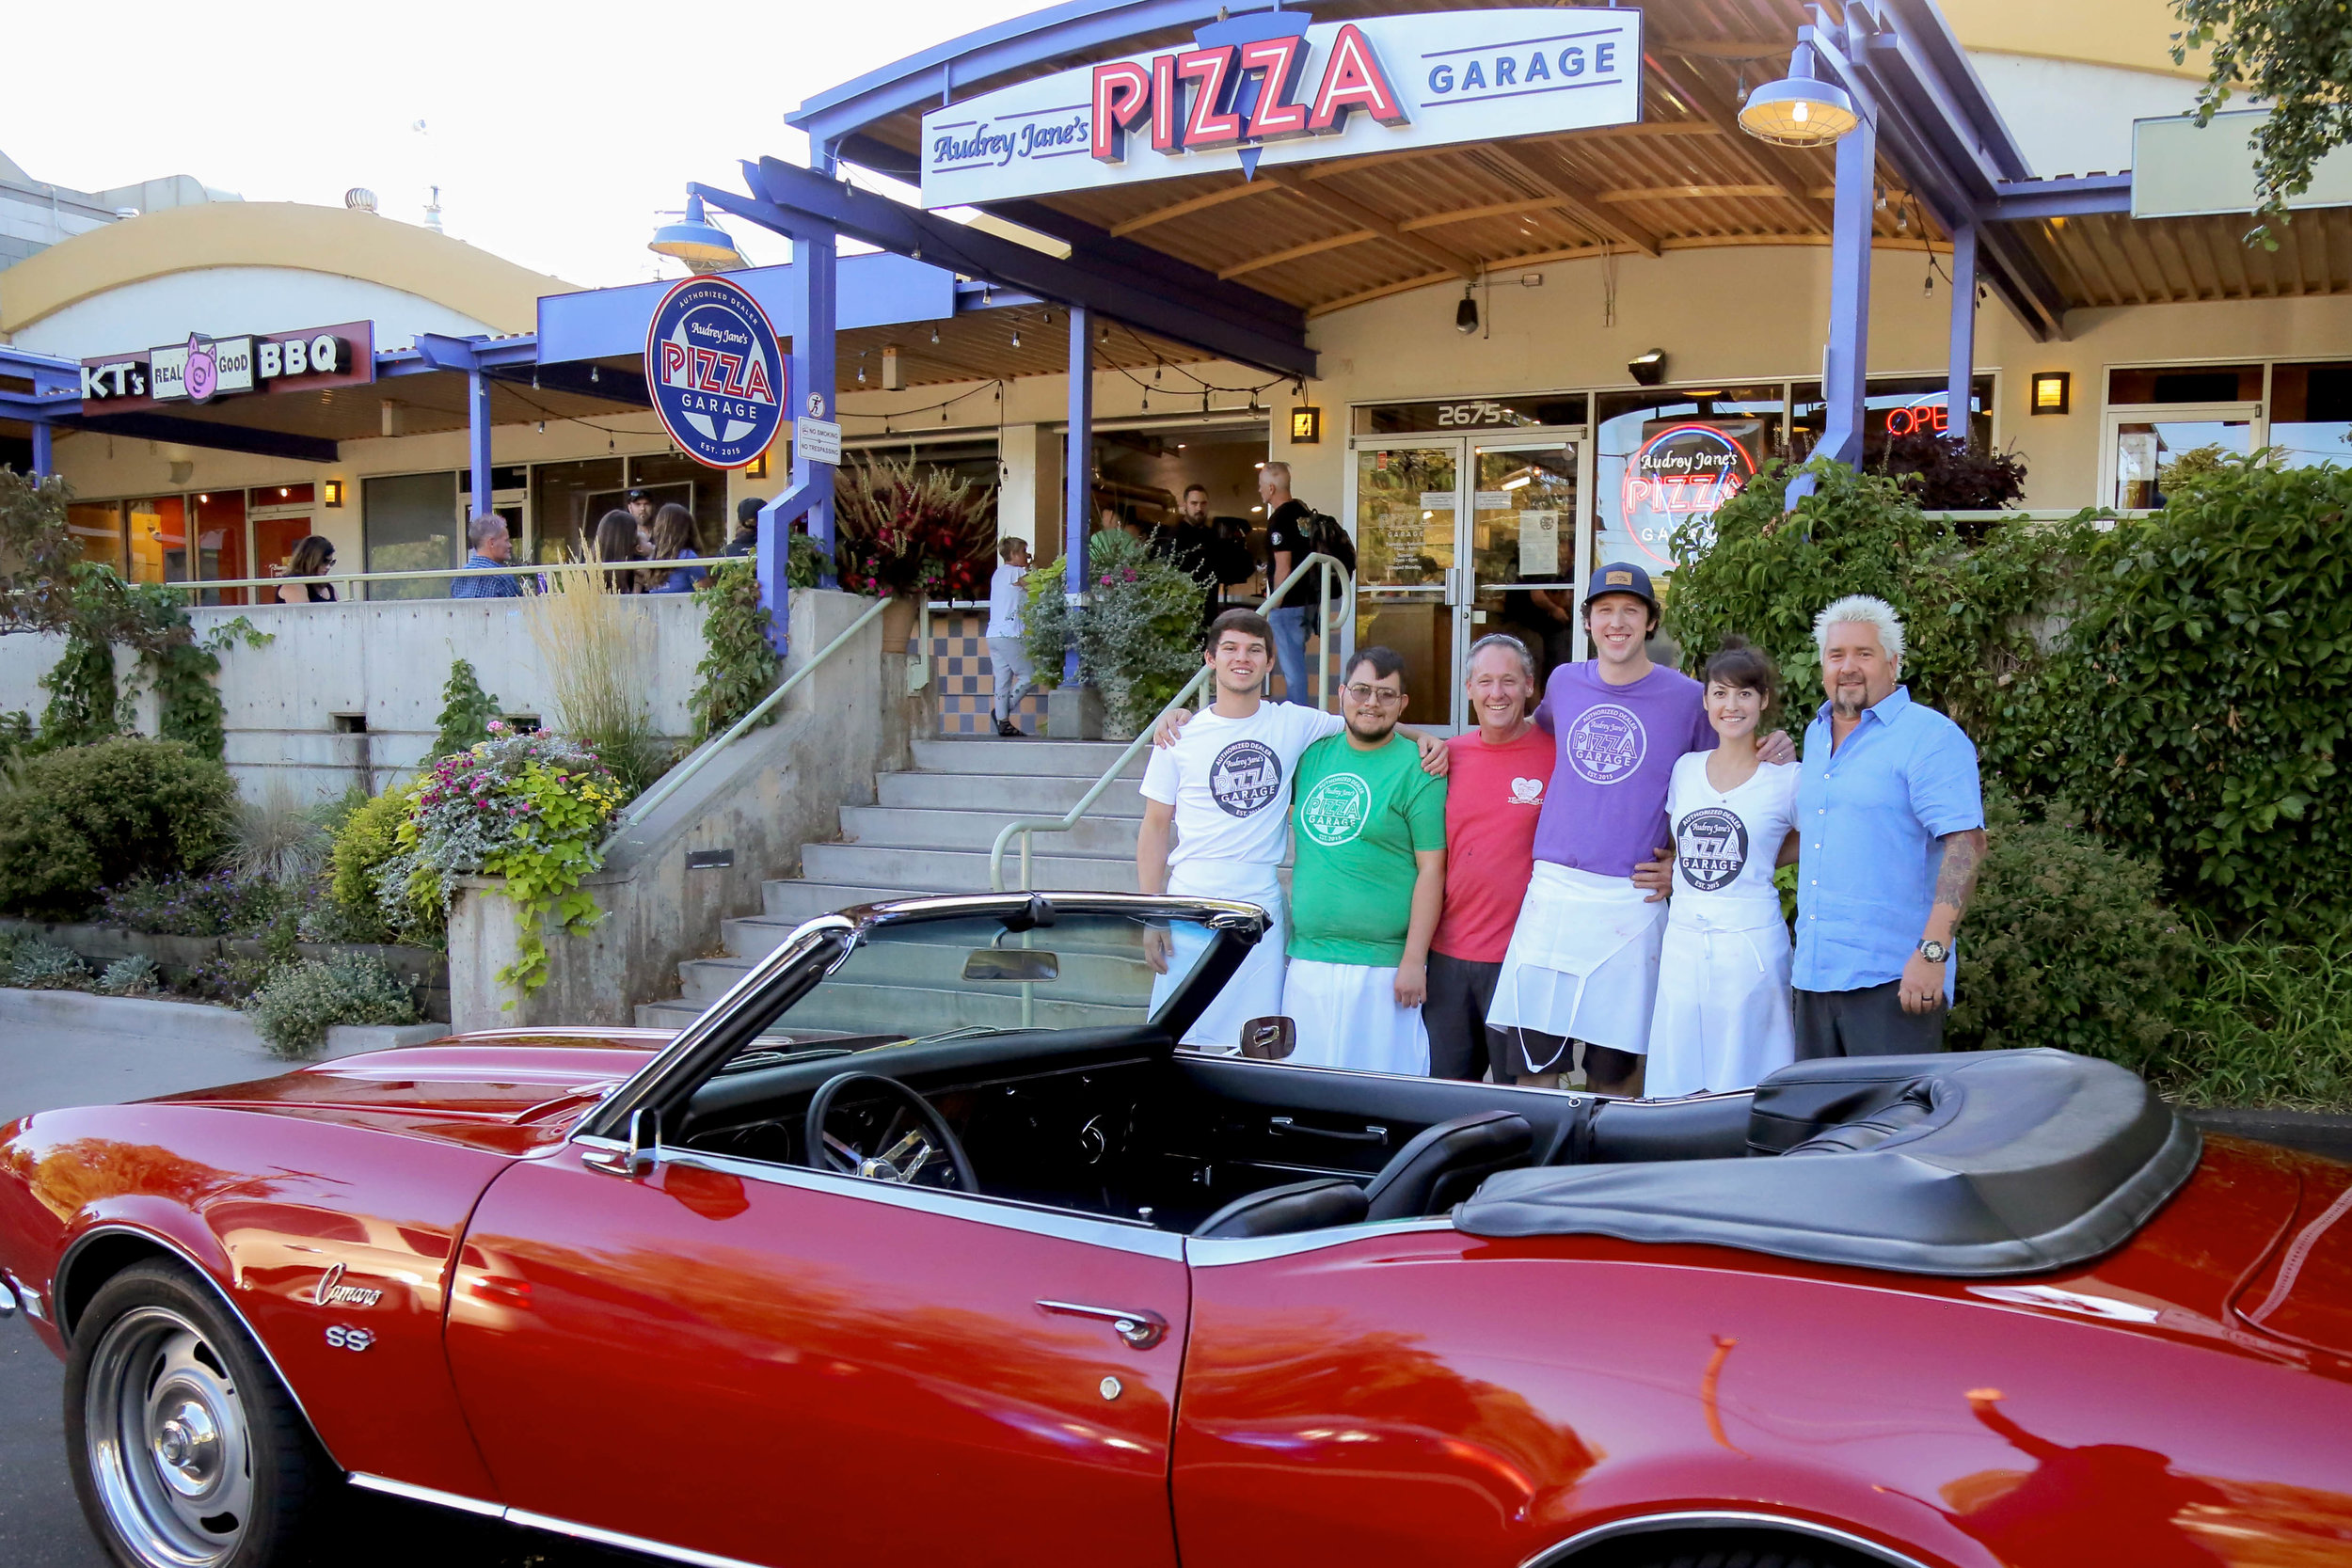 Famous Boulder Restaurants That Have Starred on TV on guy diners and dives, drivers diners and dives, car drivers drive-ins dives, 13 gypsies jacksonville diners and dives, diners and dives locations in hawaii,